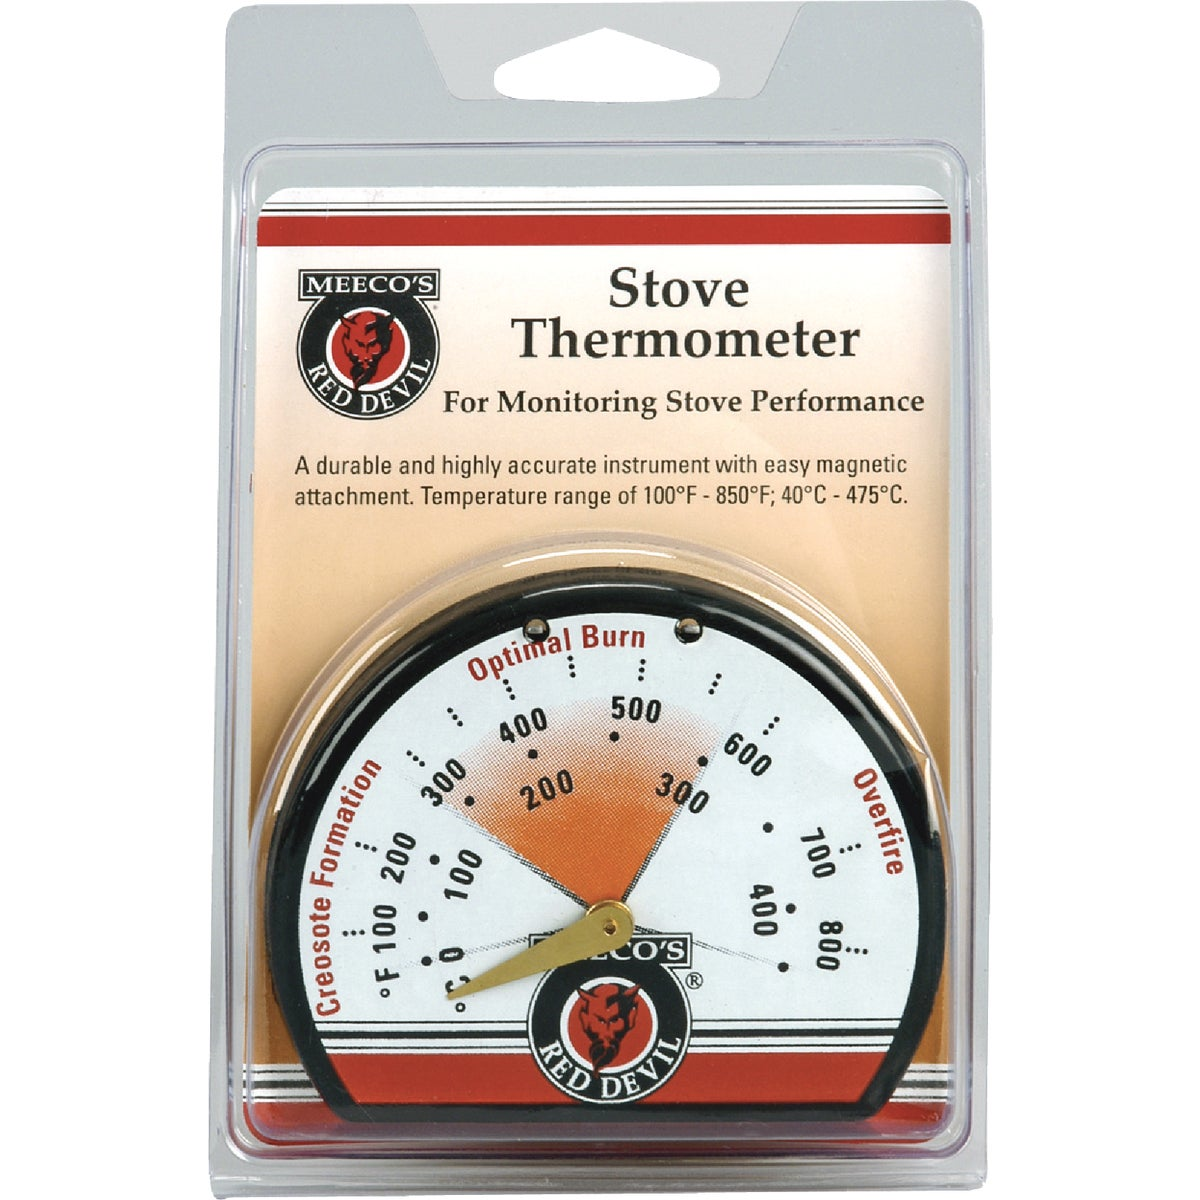 STOVE THERMOMETER - 425 by Meeco Mfg